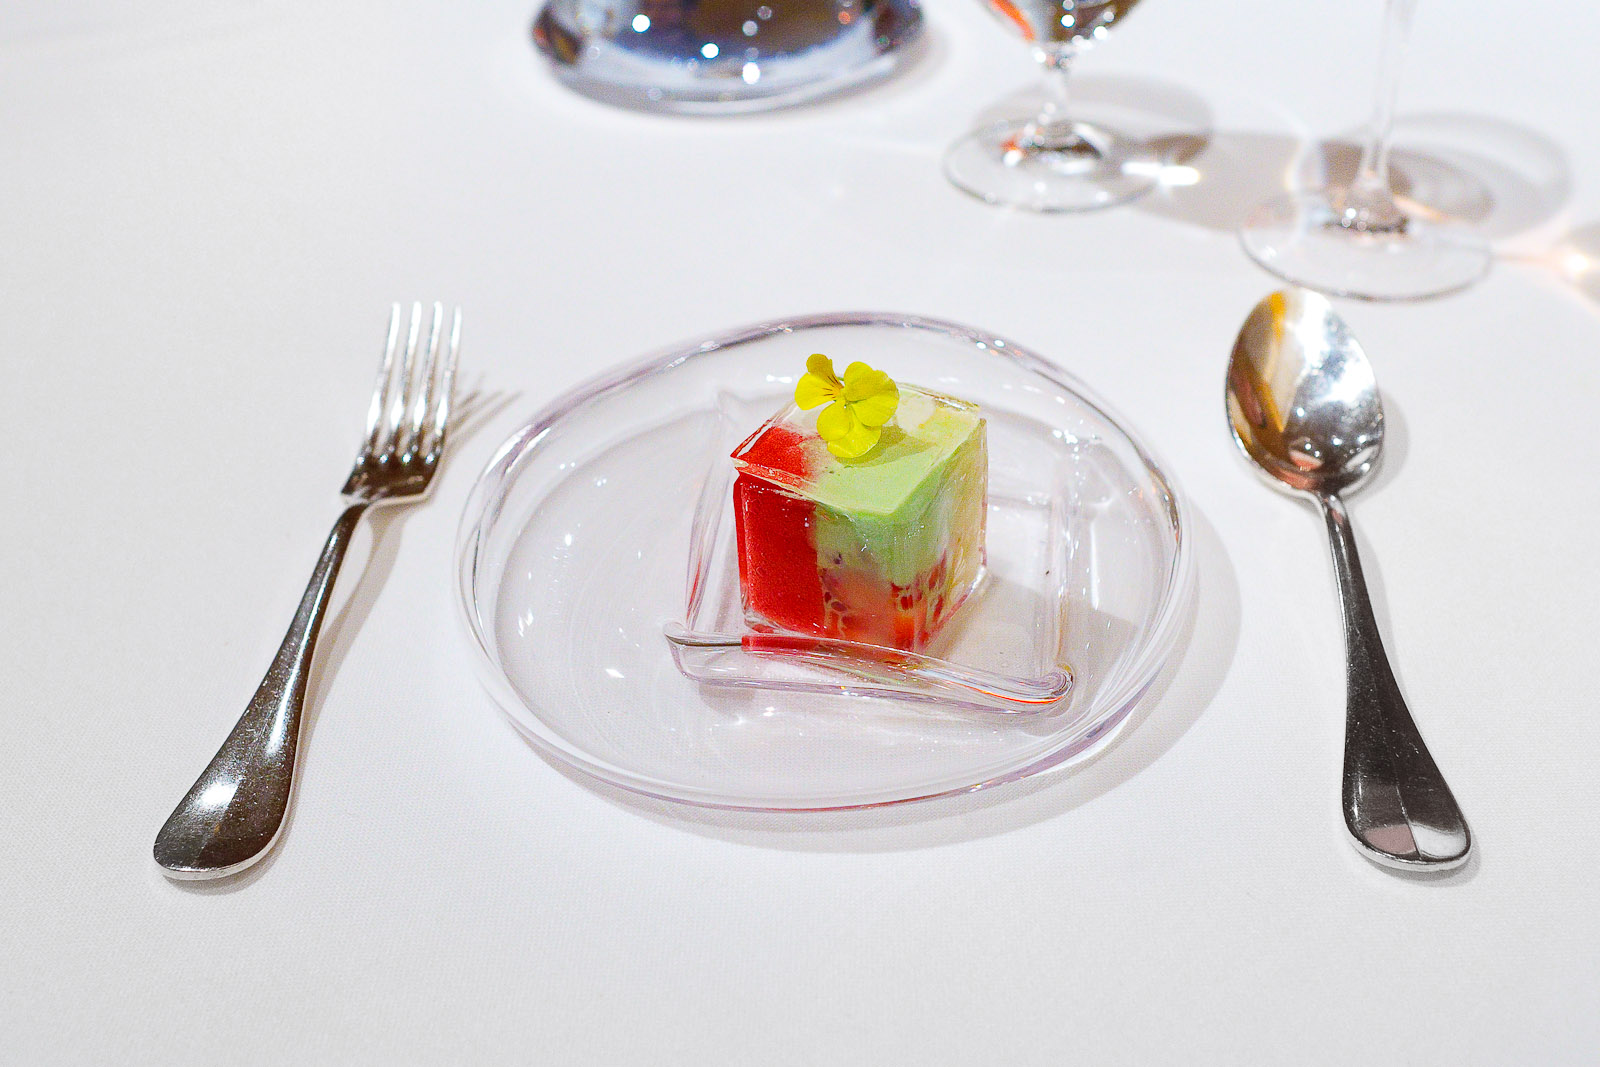 8th Course: Transparent cube, berries, shiso, raspberries